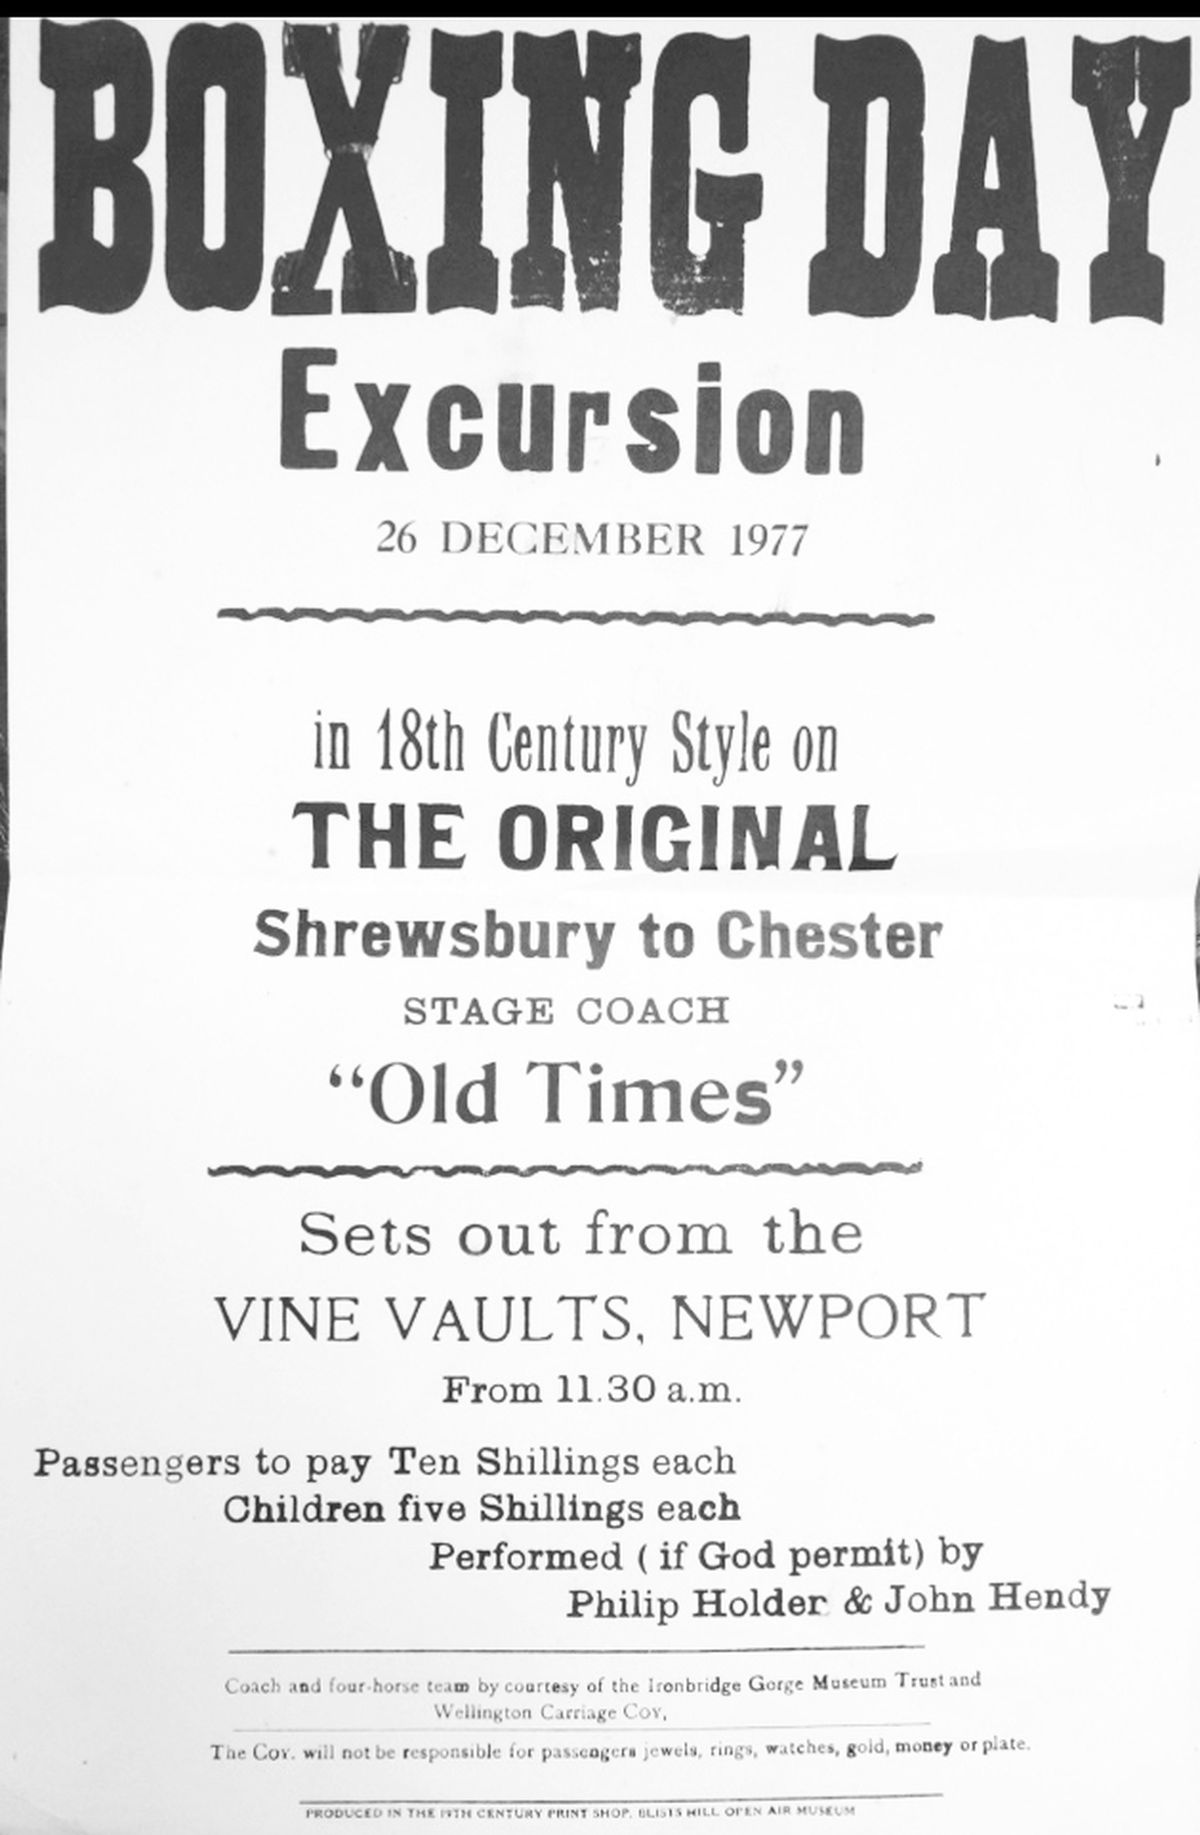 A poster for a Boxing Day excursion in 1977 on Old Times, setting out from the Vine Vaults in Newport.